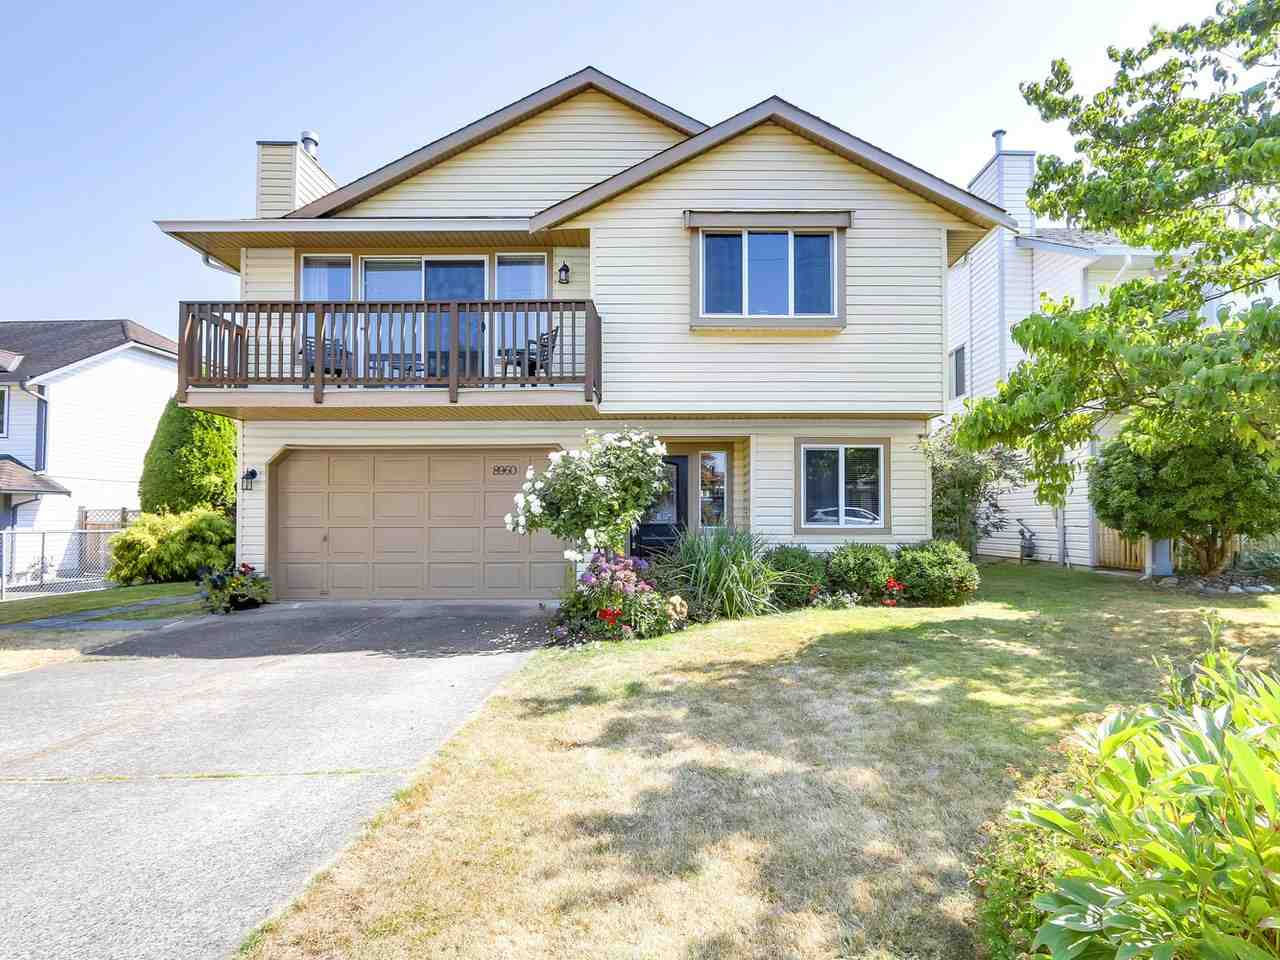 Main Photo: 8960 213 Street in Langley: Walnut Grove House for sale : MLS® # R2201499